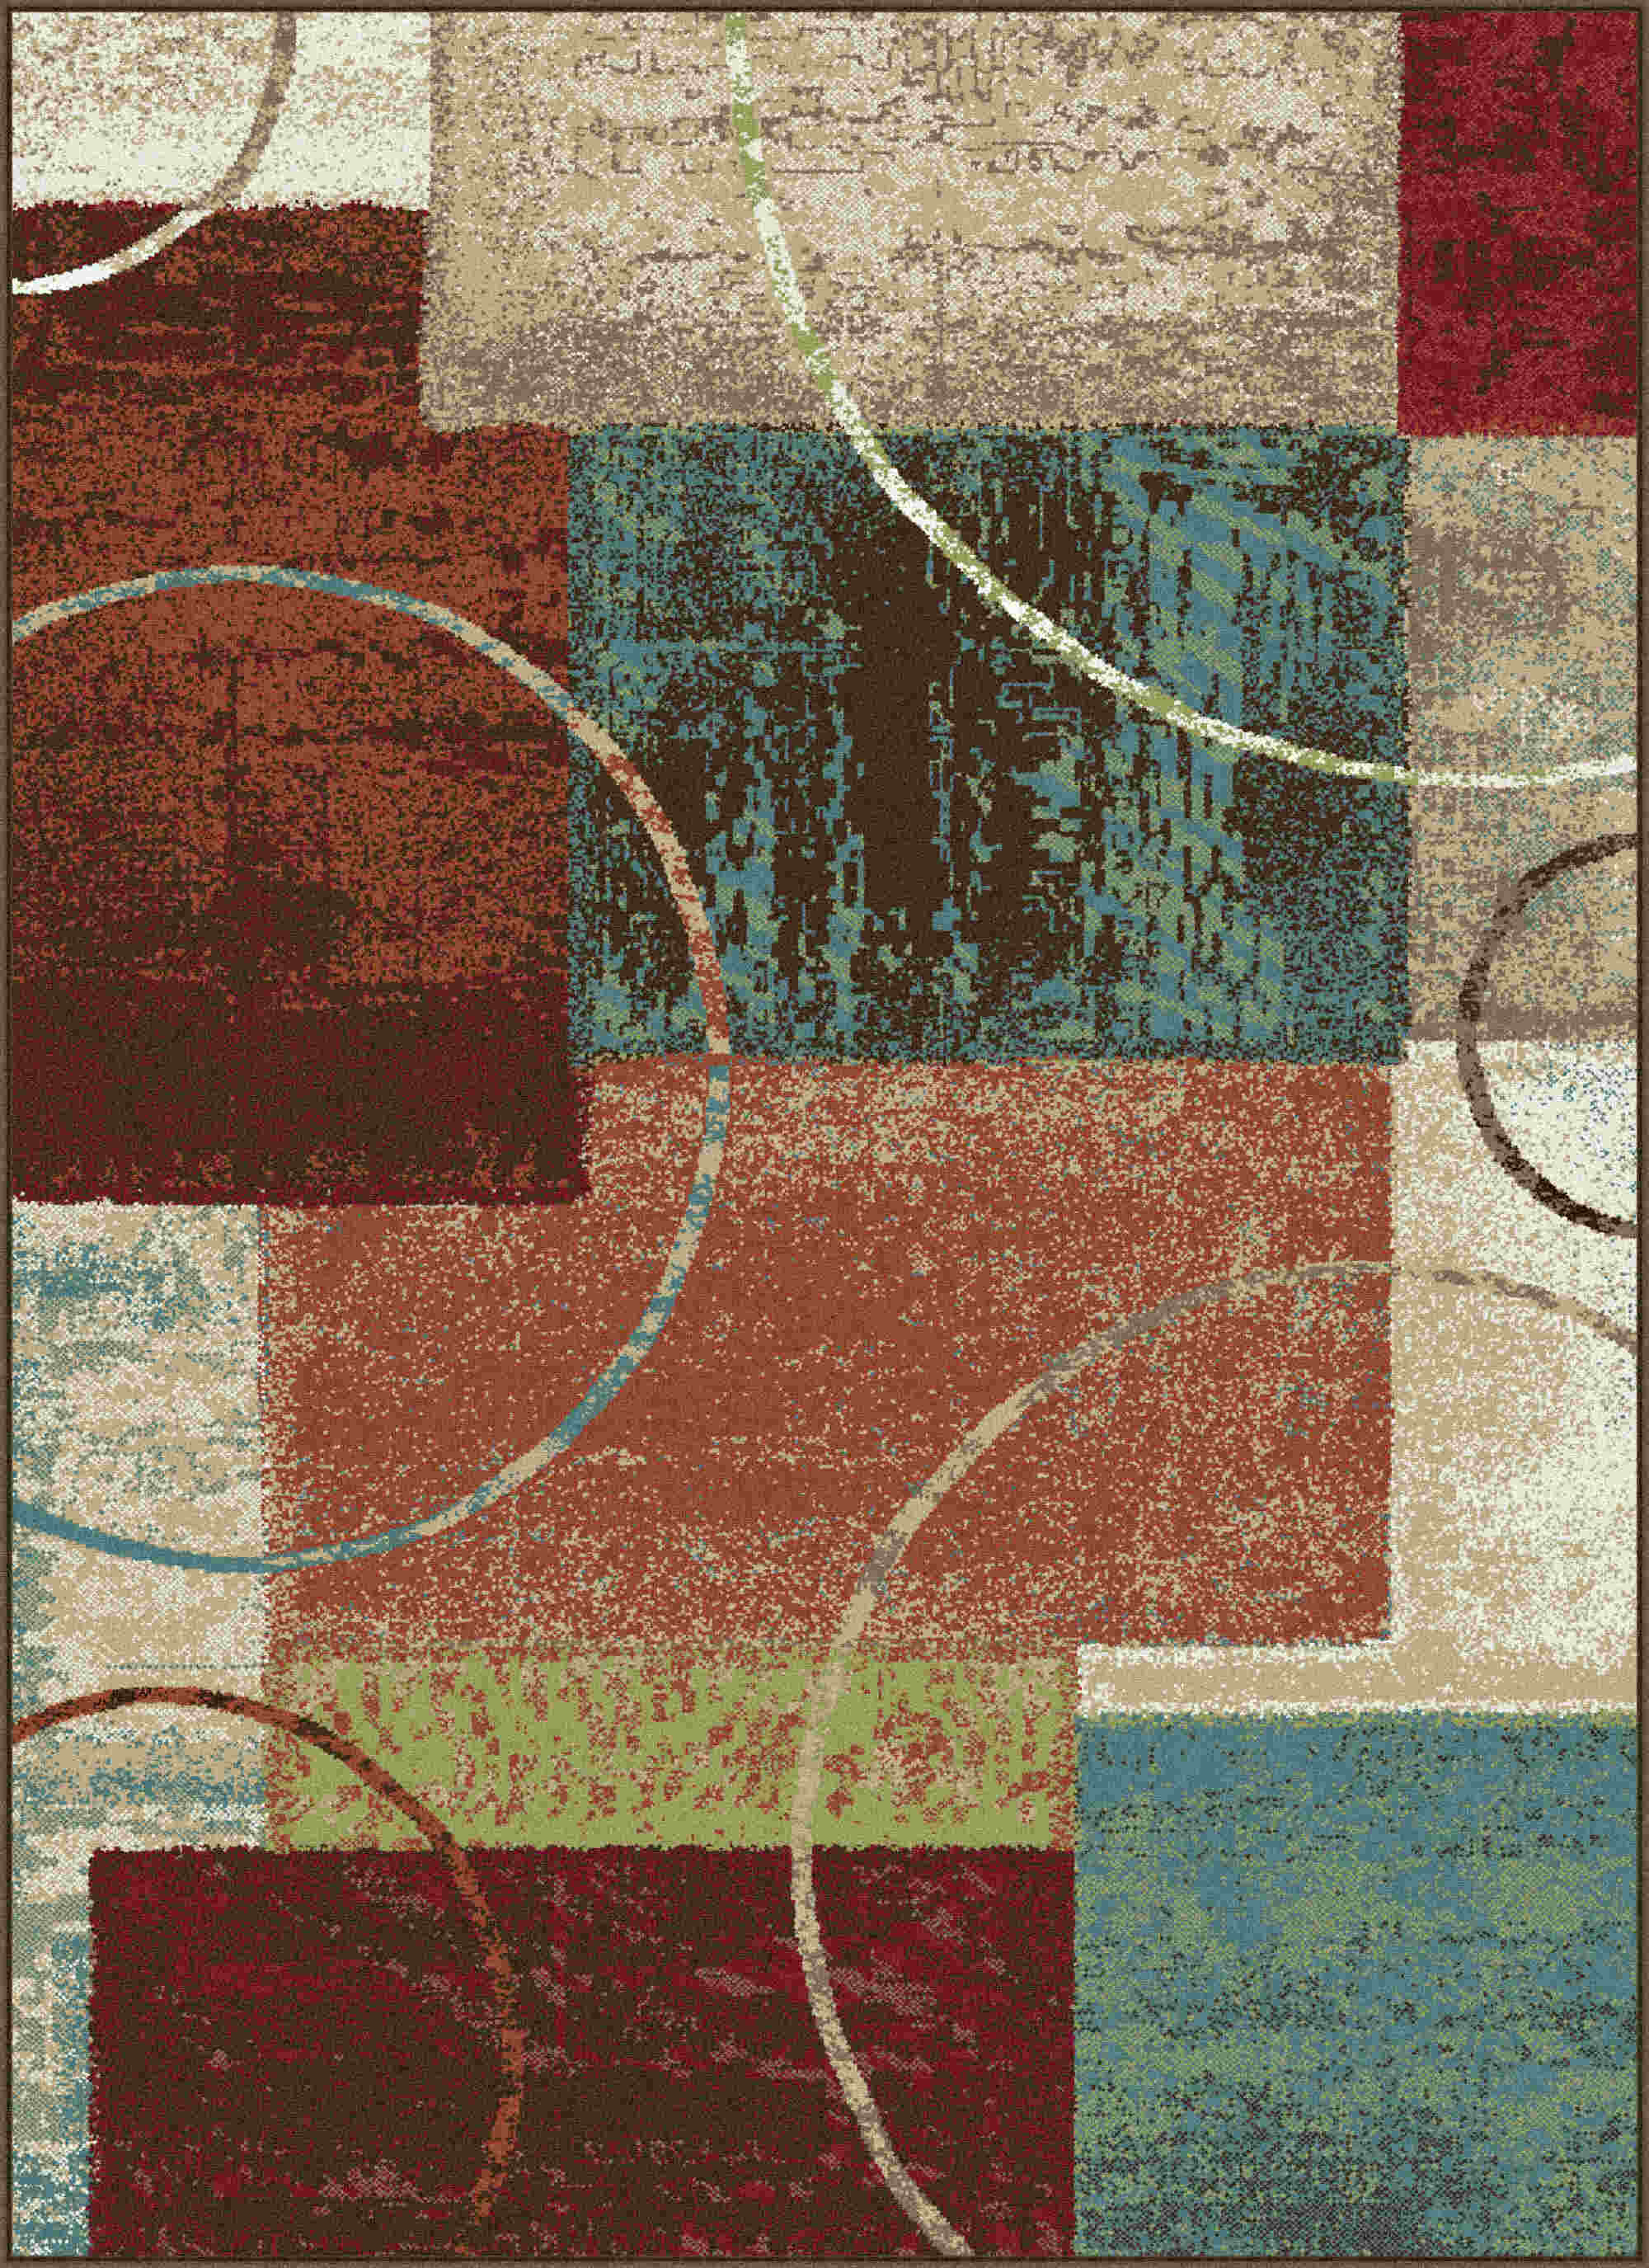 Deco Dco1004 Multi Contemporary Area Rug